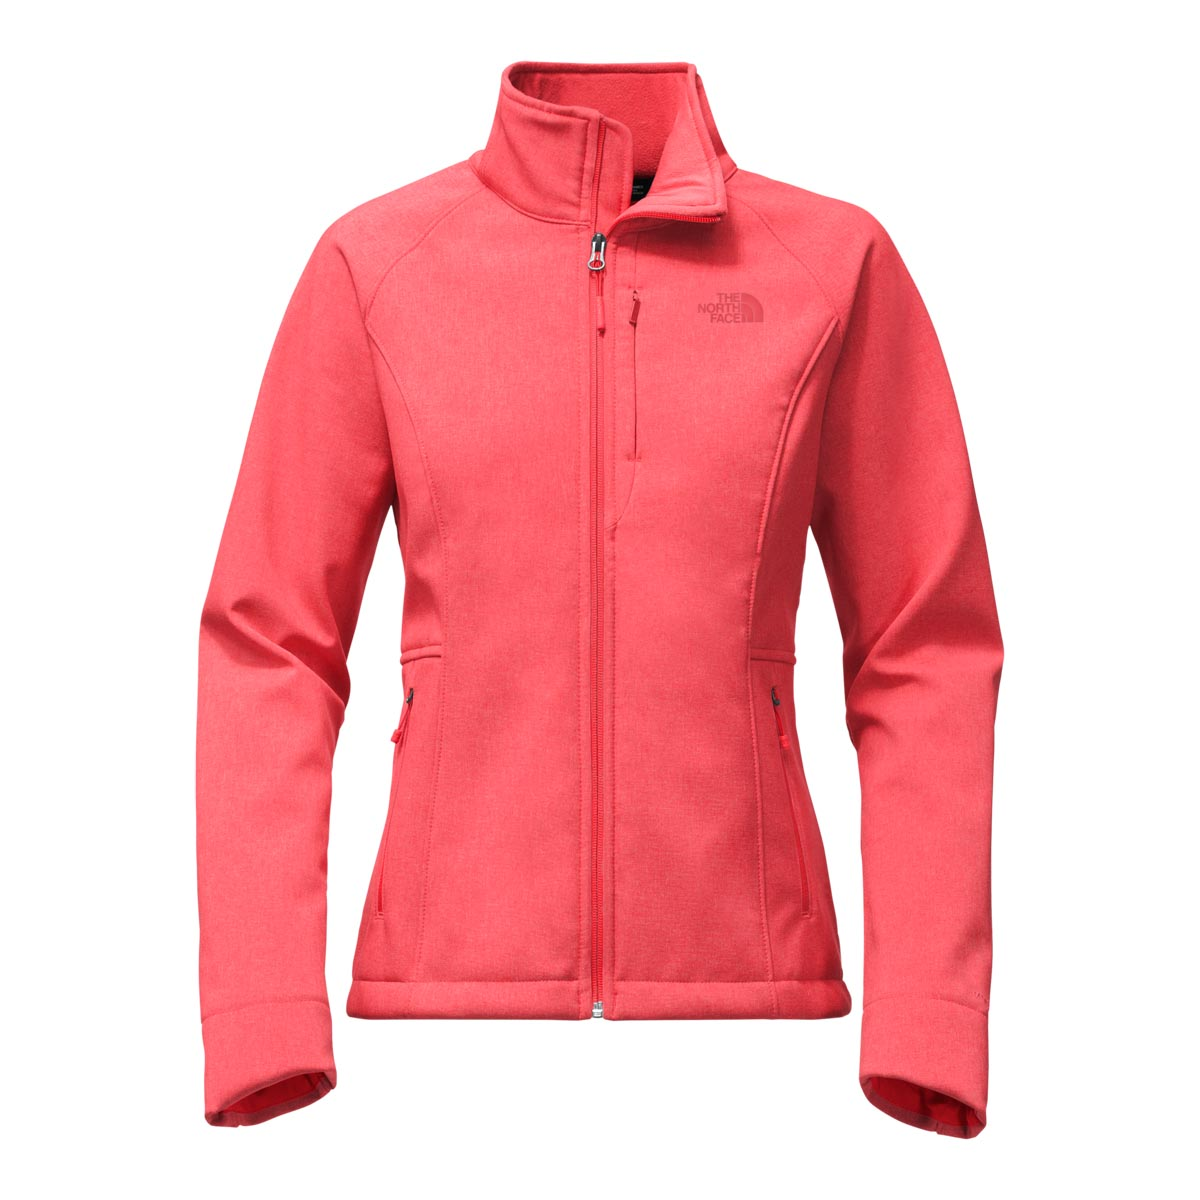 The North Face Women's Apex Bionic 2 Jacket Pricing